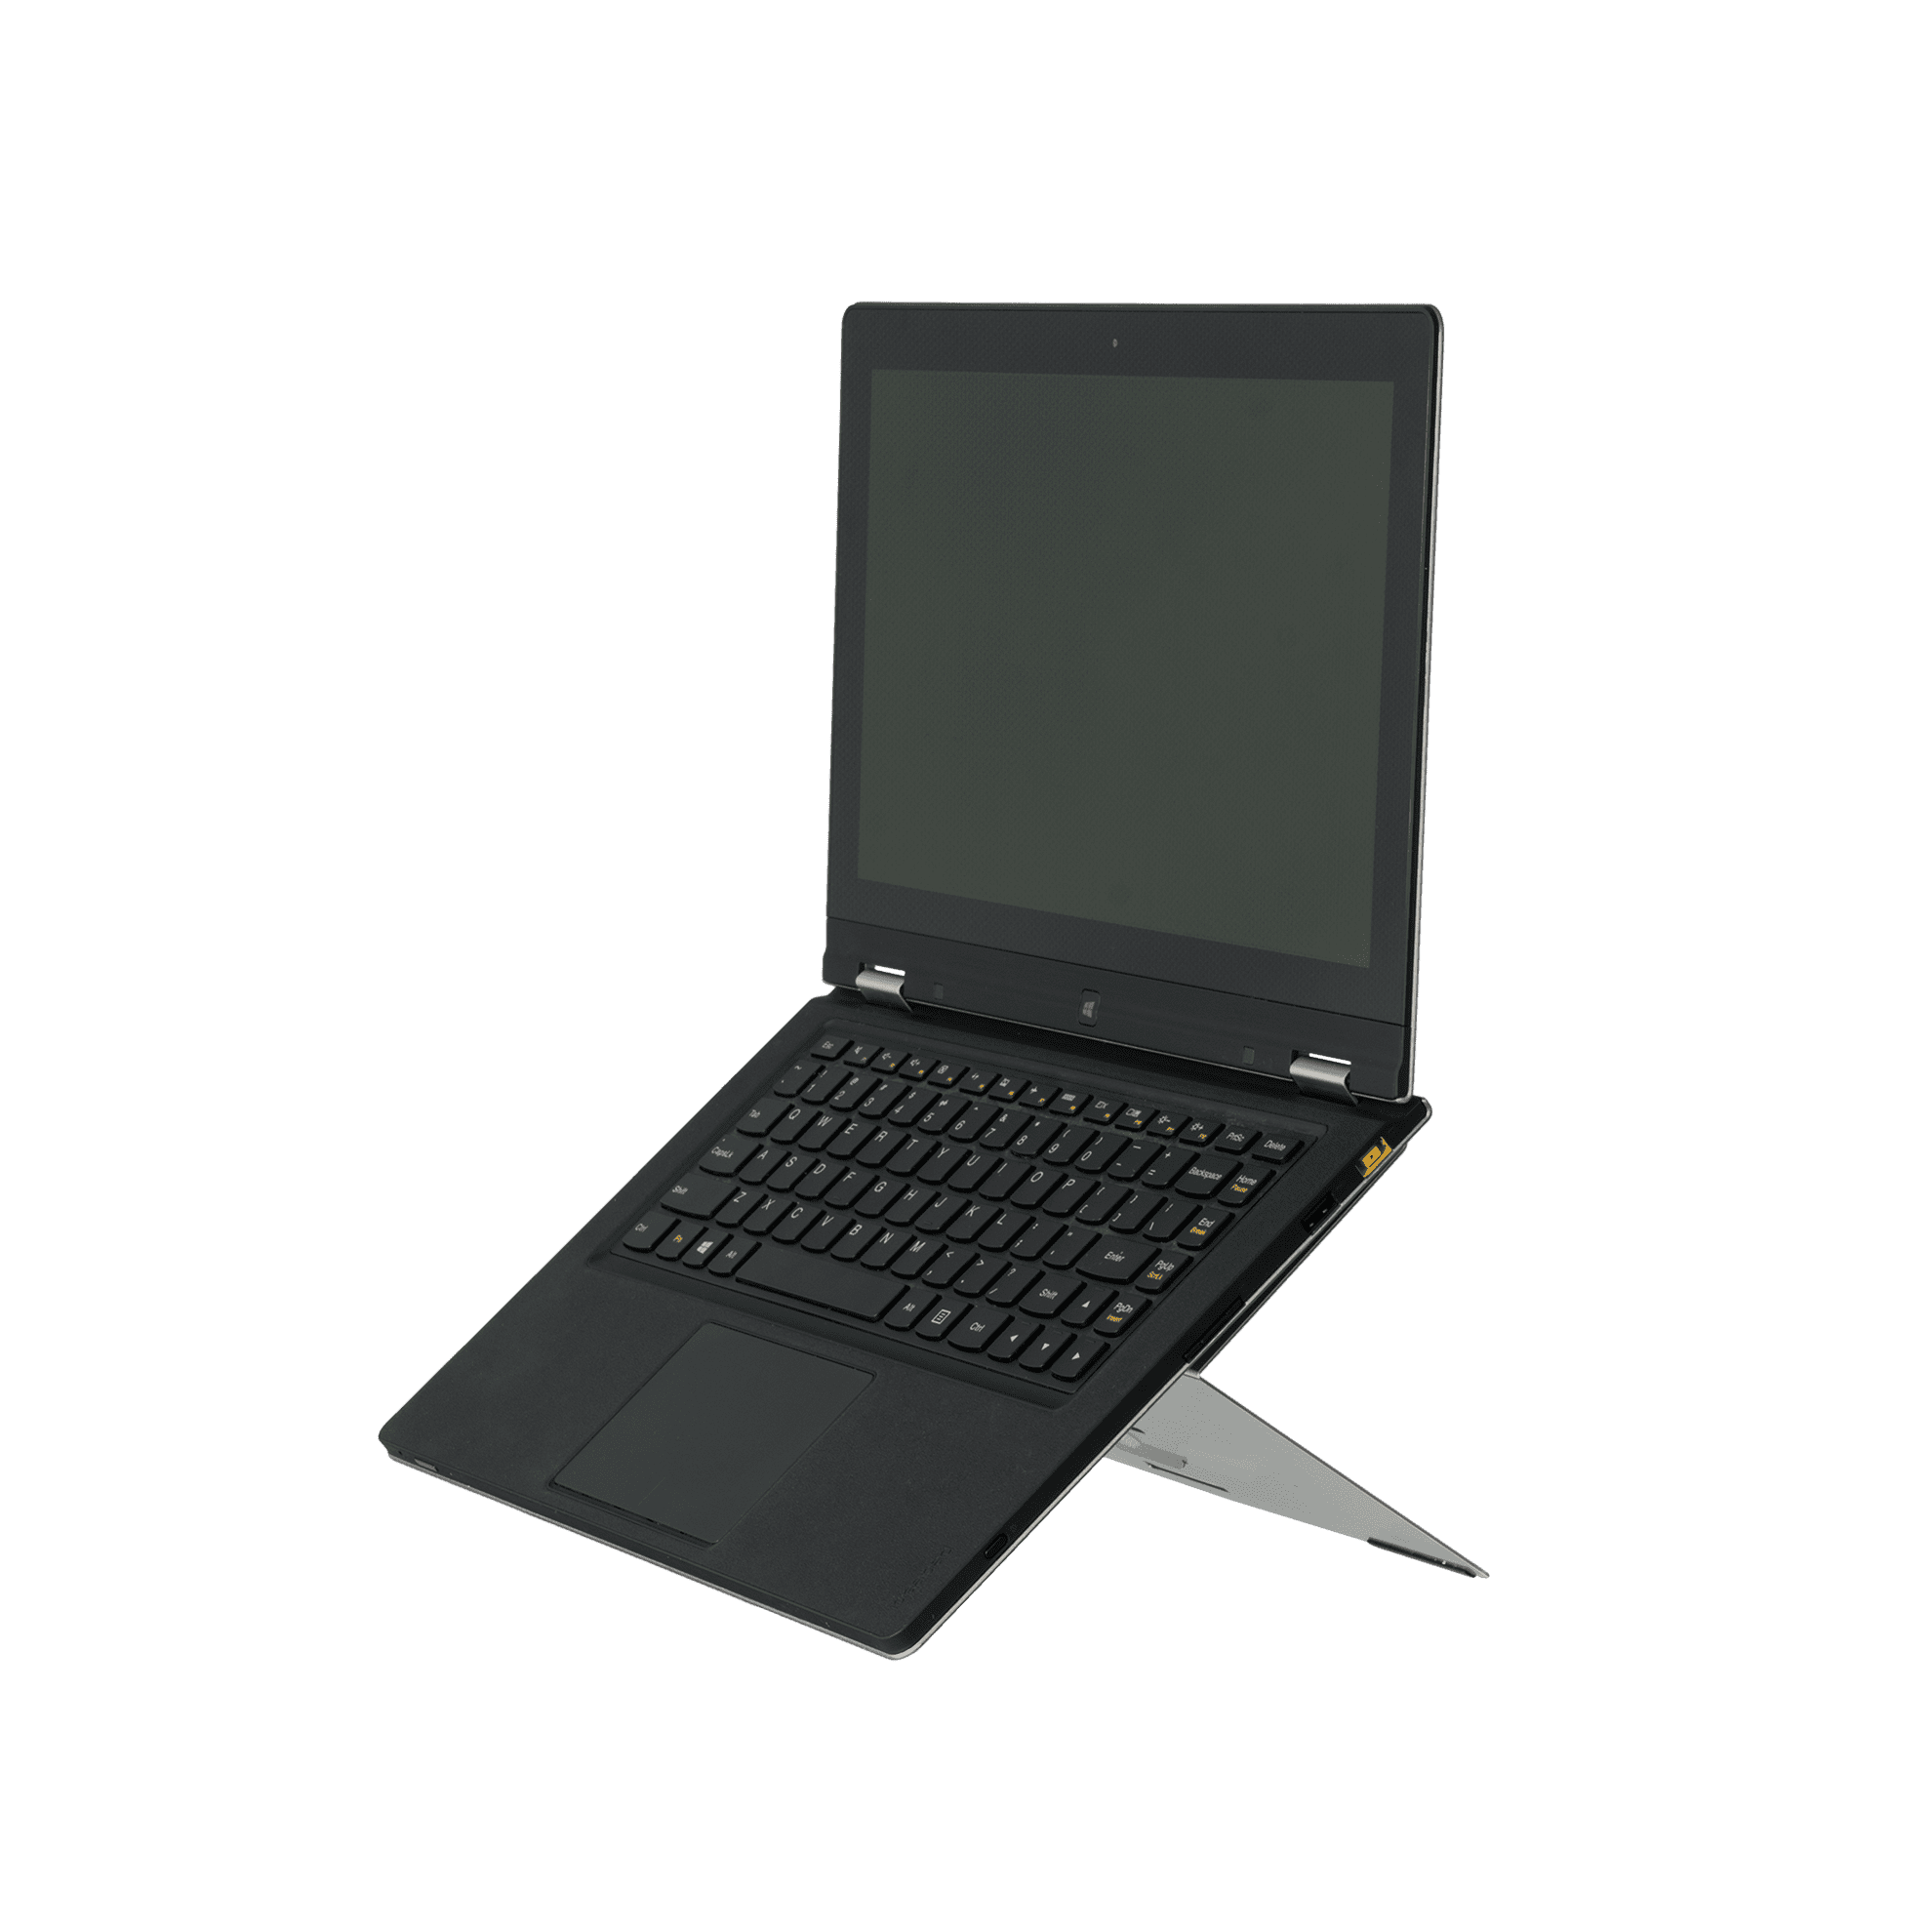 R-Go Riser Attachable Laptopständer, verstellbar, silber - 1